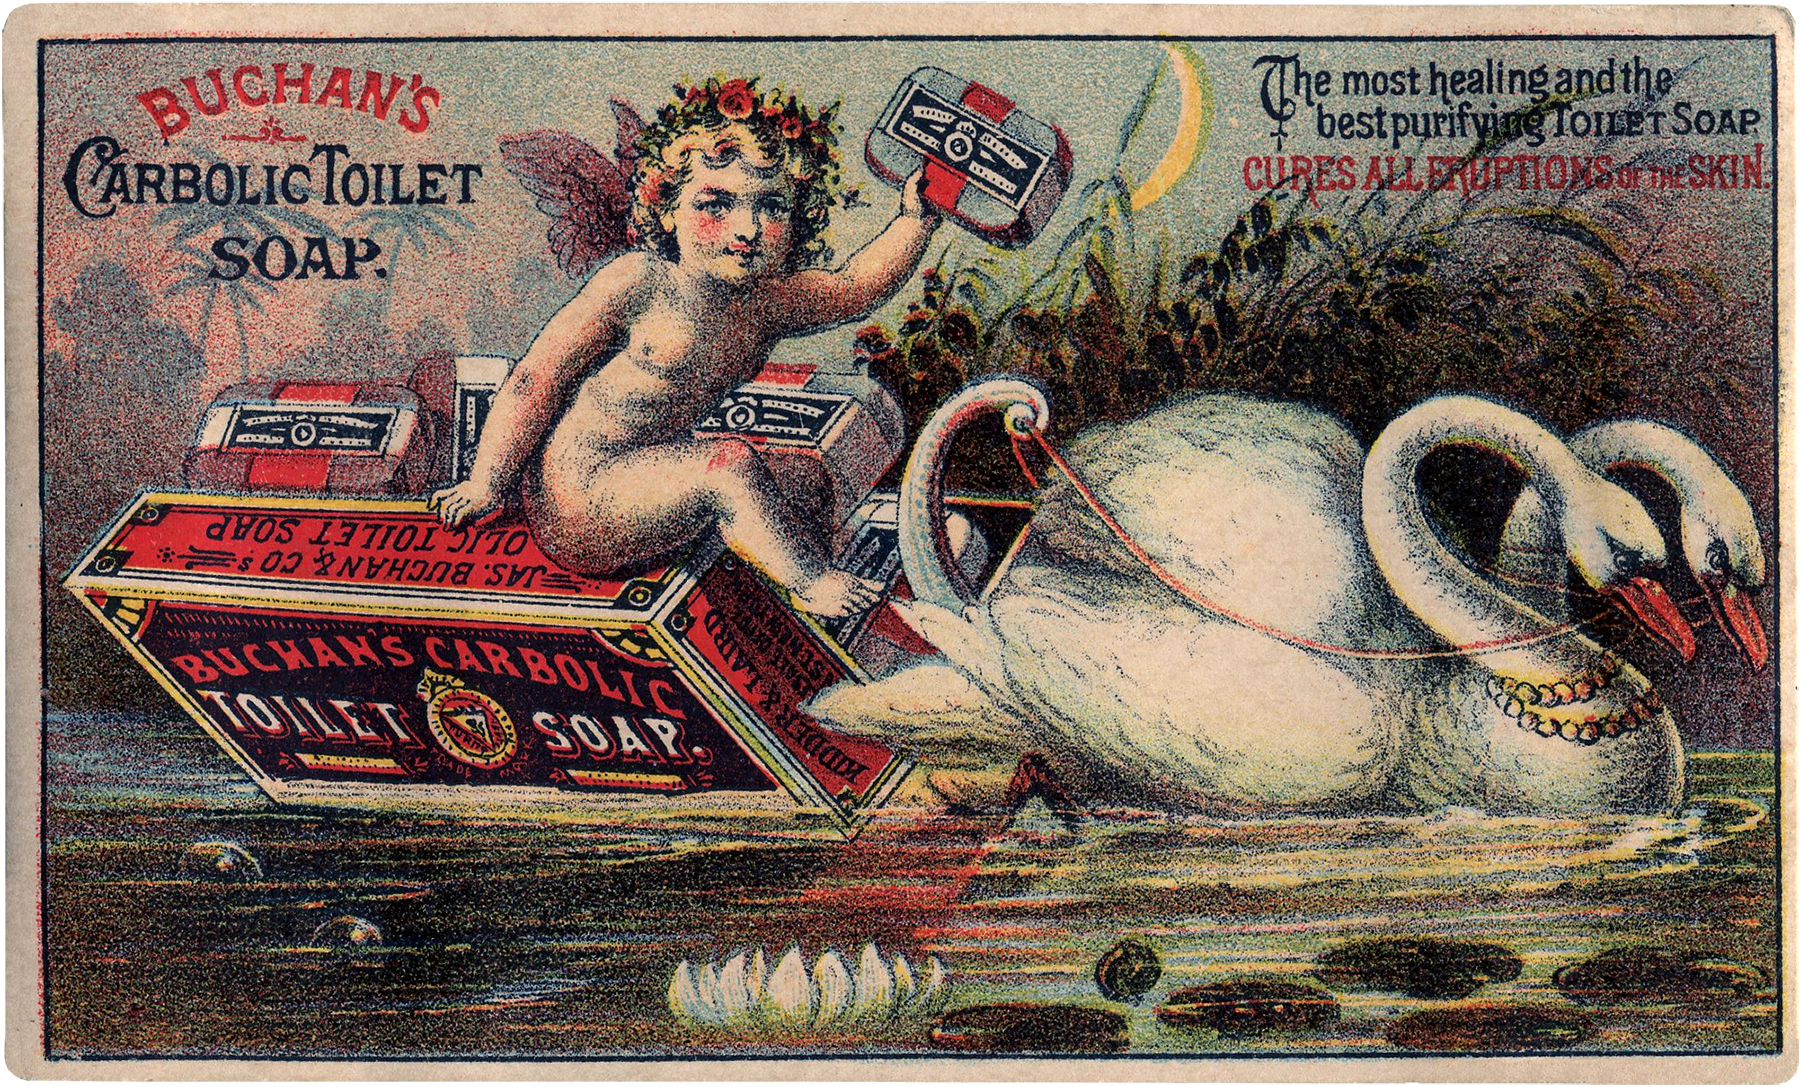 Vintage Swan Boat Image! - The Graphics Fairy